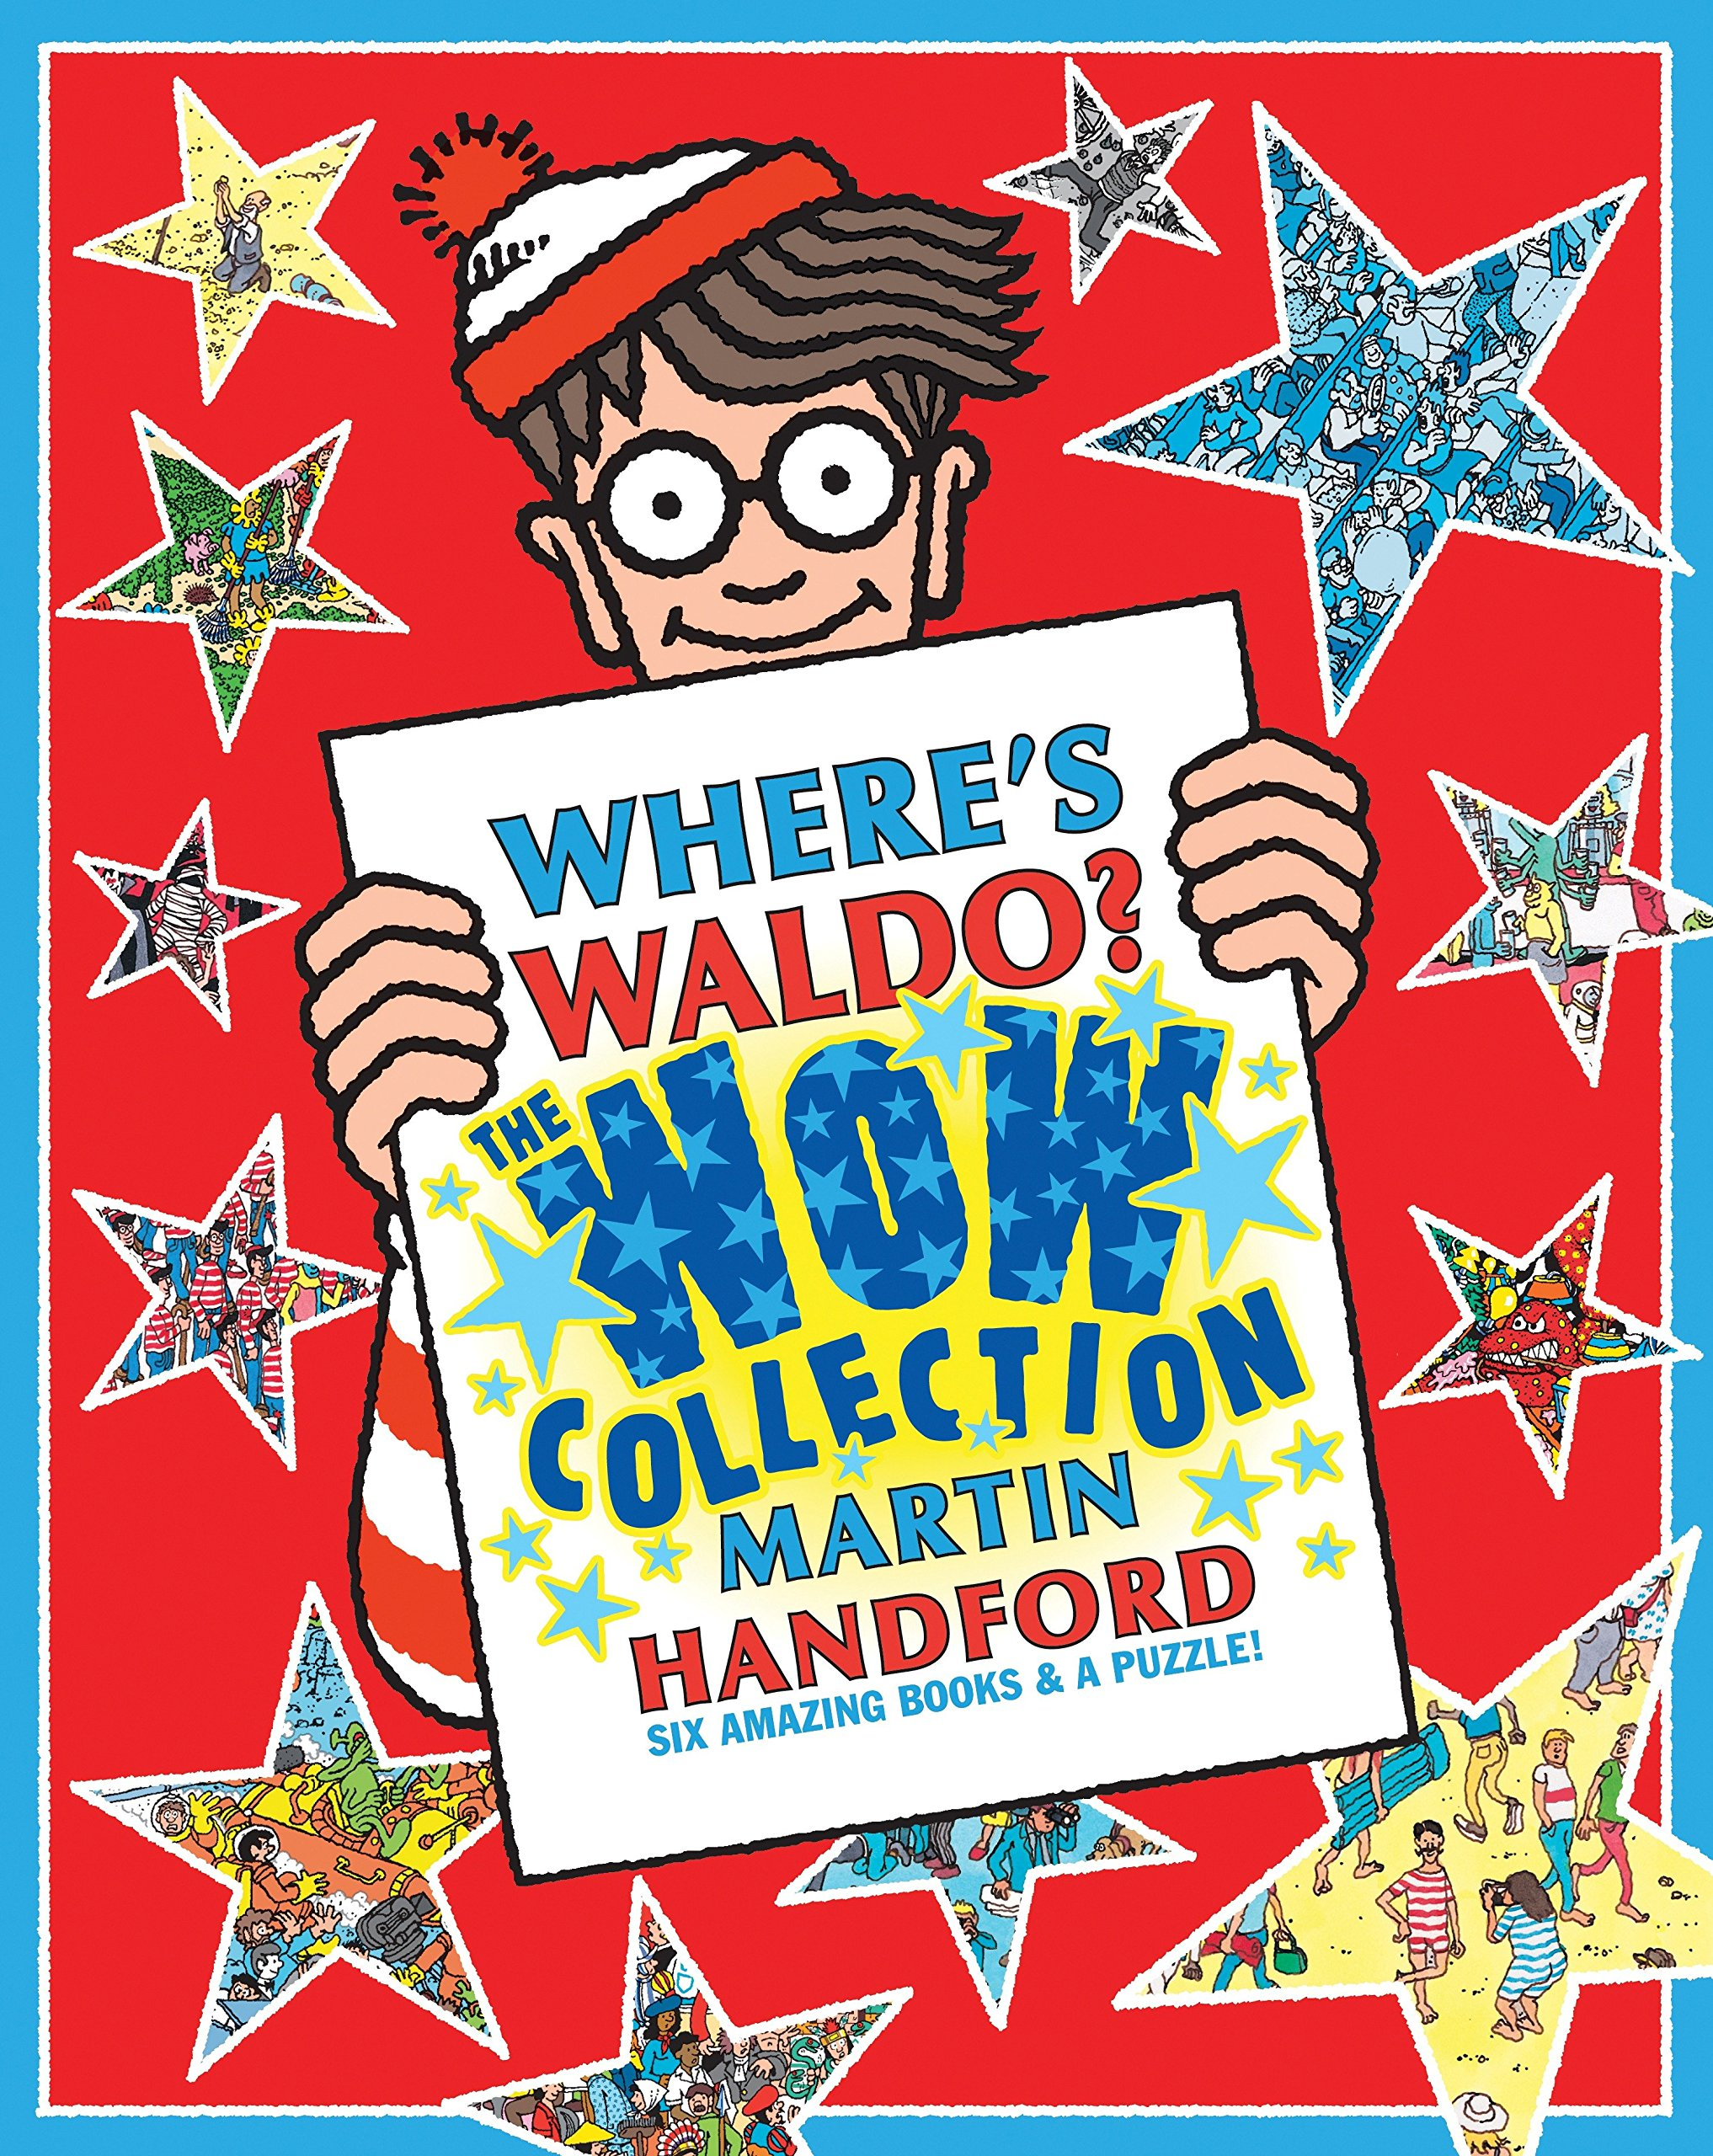 Where's Waldo? The Wow Collection: Six Amazing Books and a Puzzle by Candlewick